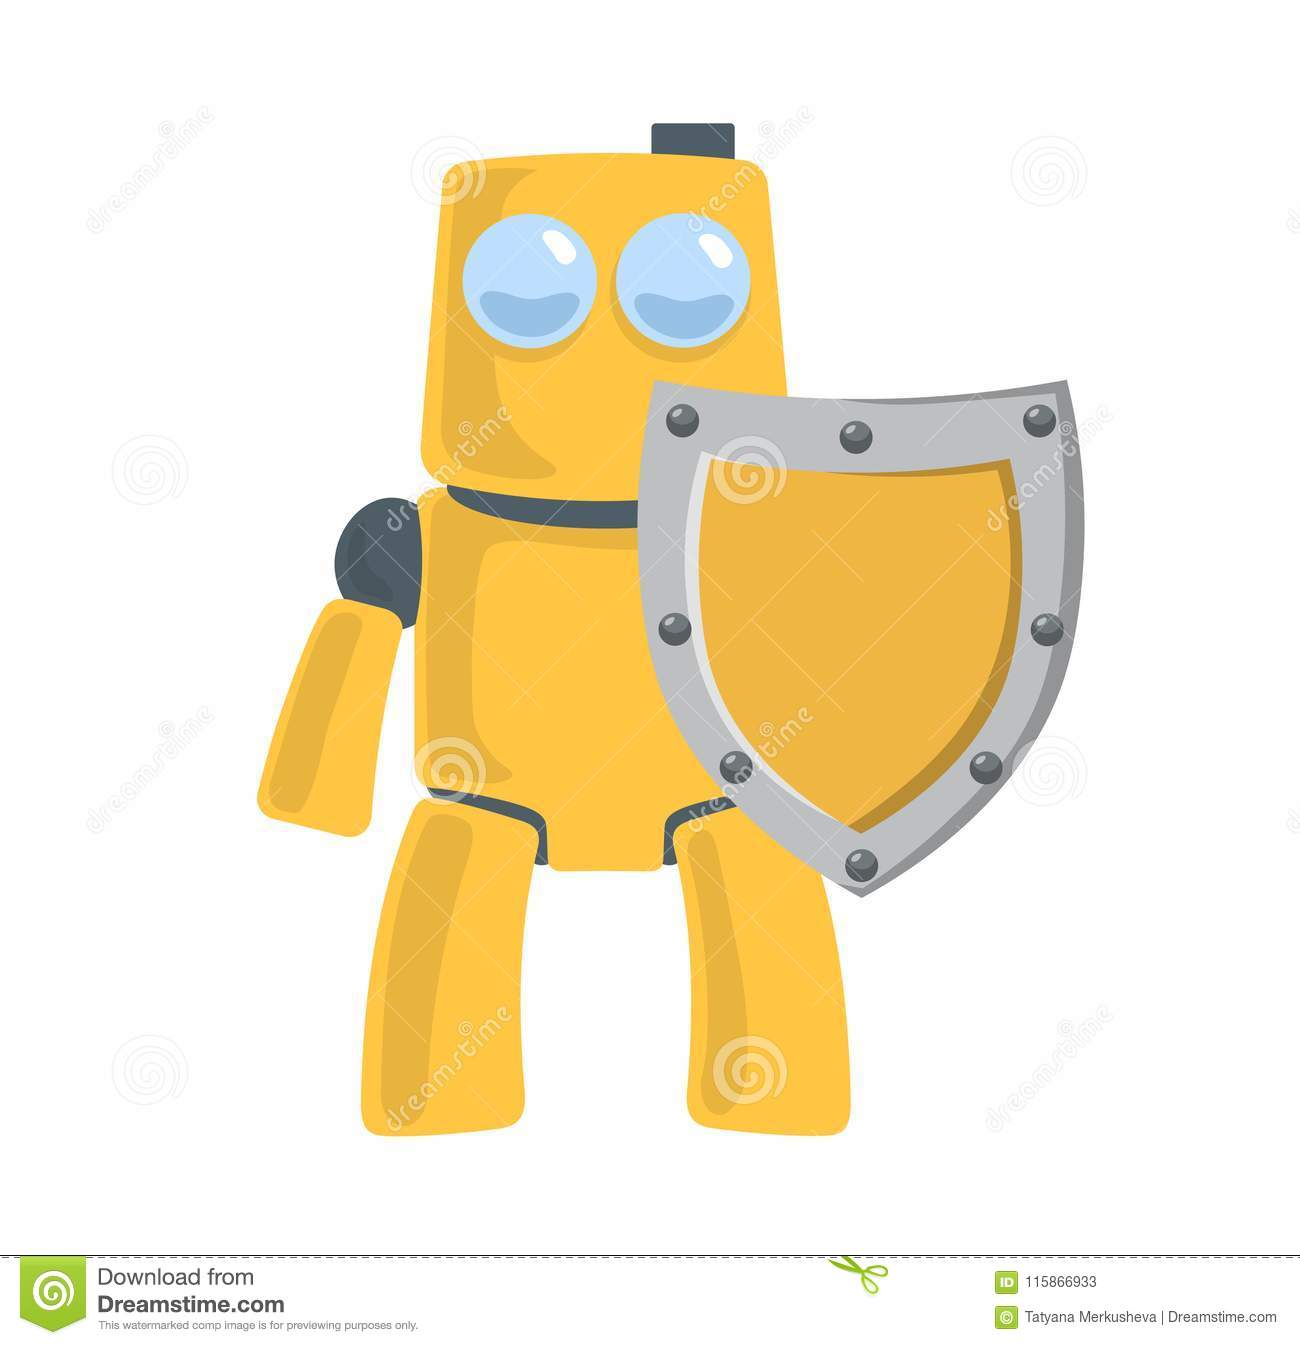 Friendly yellow robot with the shield. Robot protector. Toy character. Flat vector illustration. Isolated on white